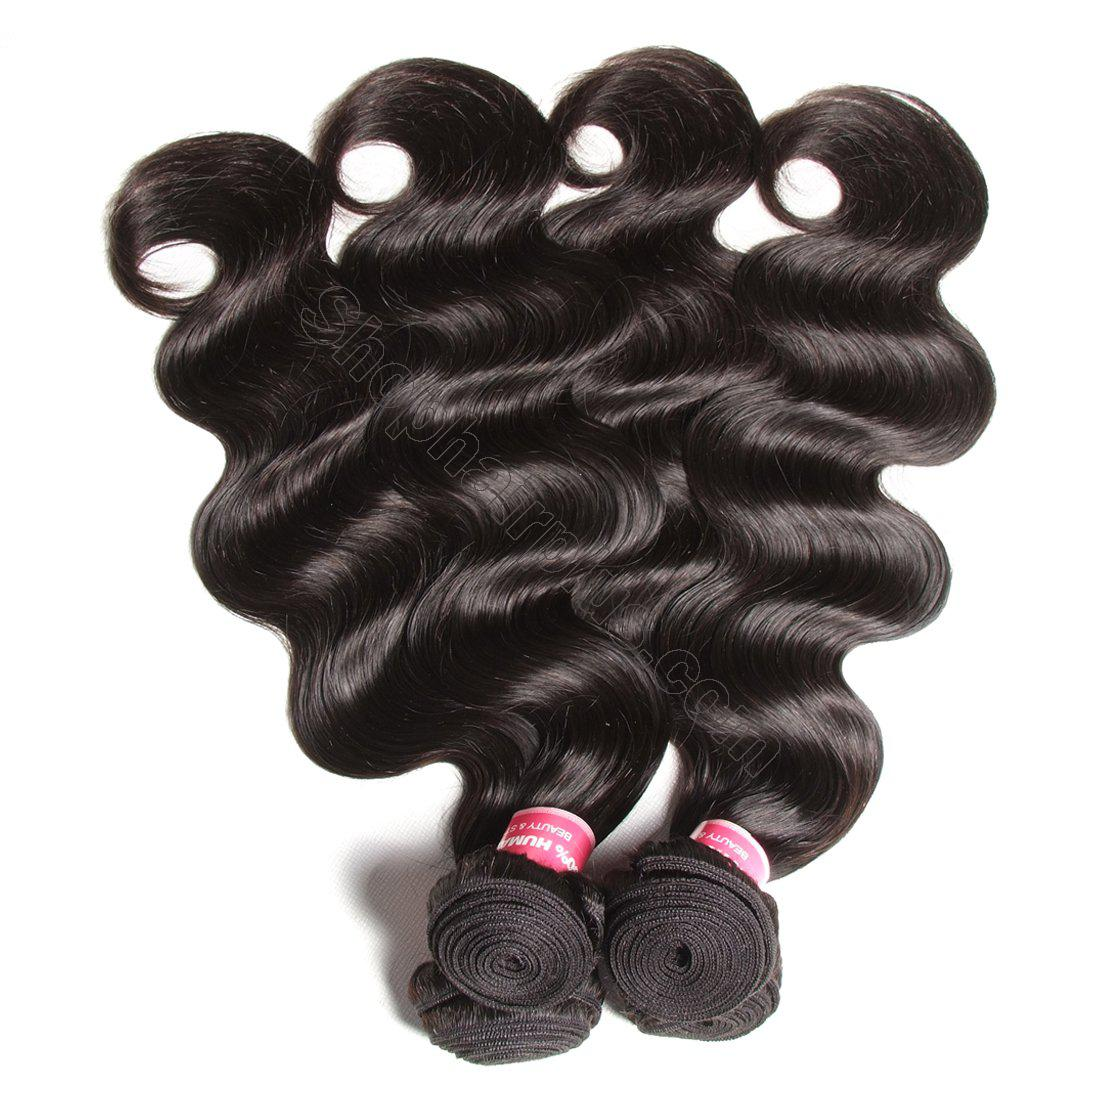 Brazilian Virgin Body Wave Hair 3 Bundles With Lace Frontal Hair Closure 3